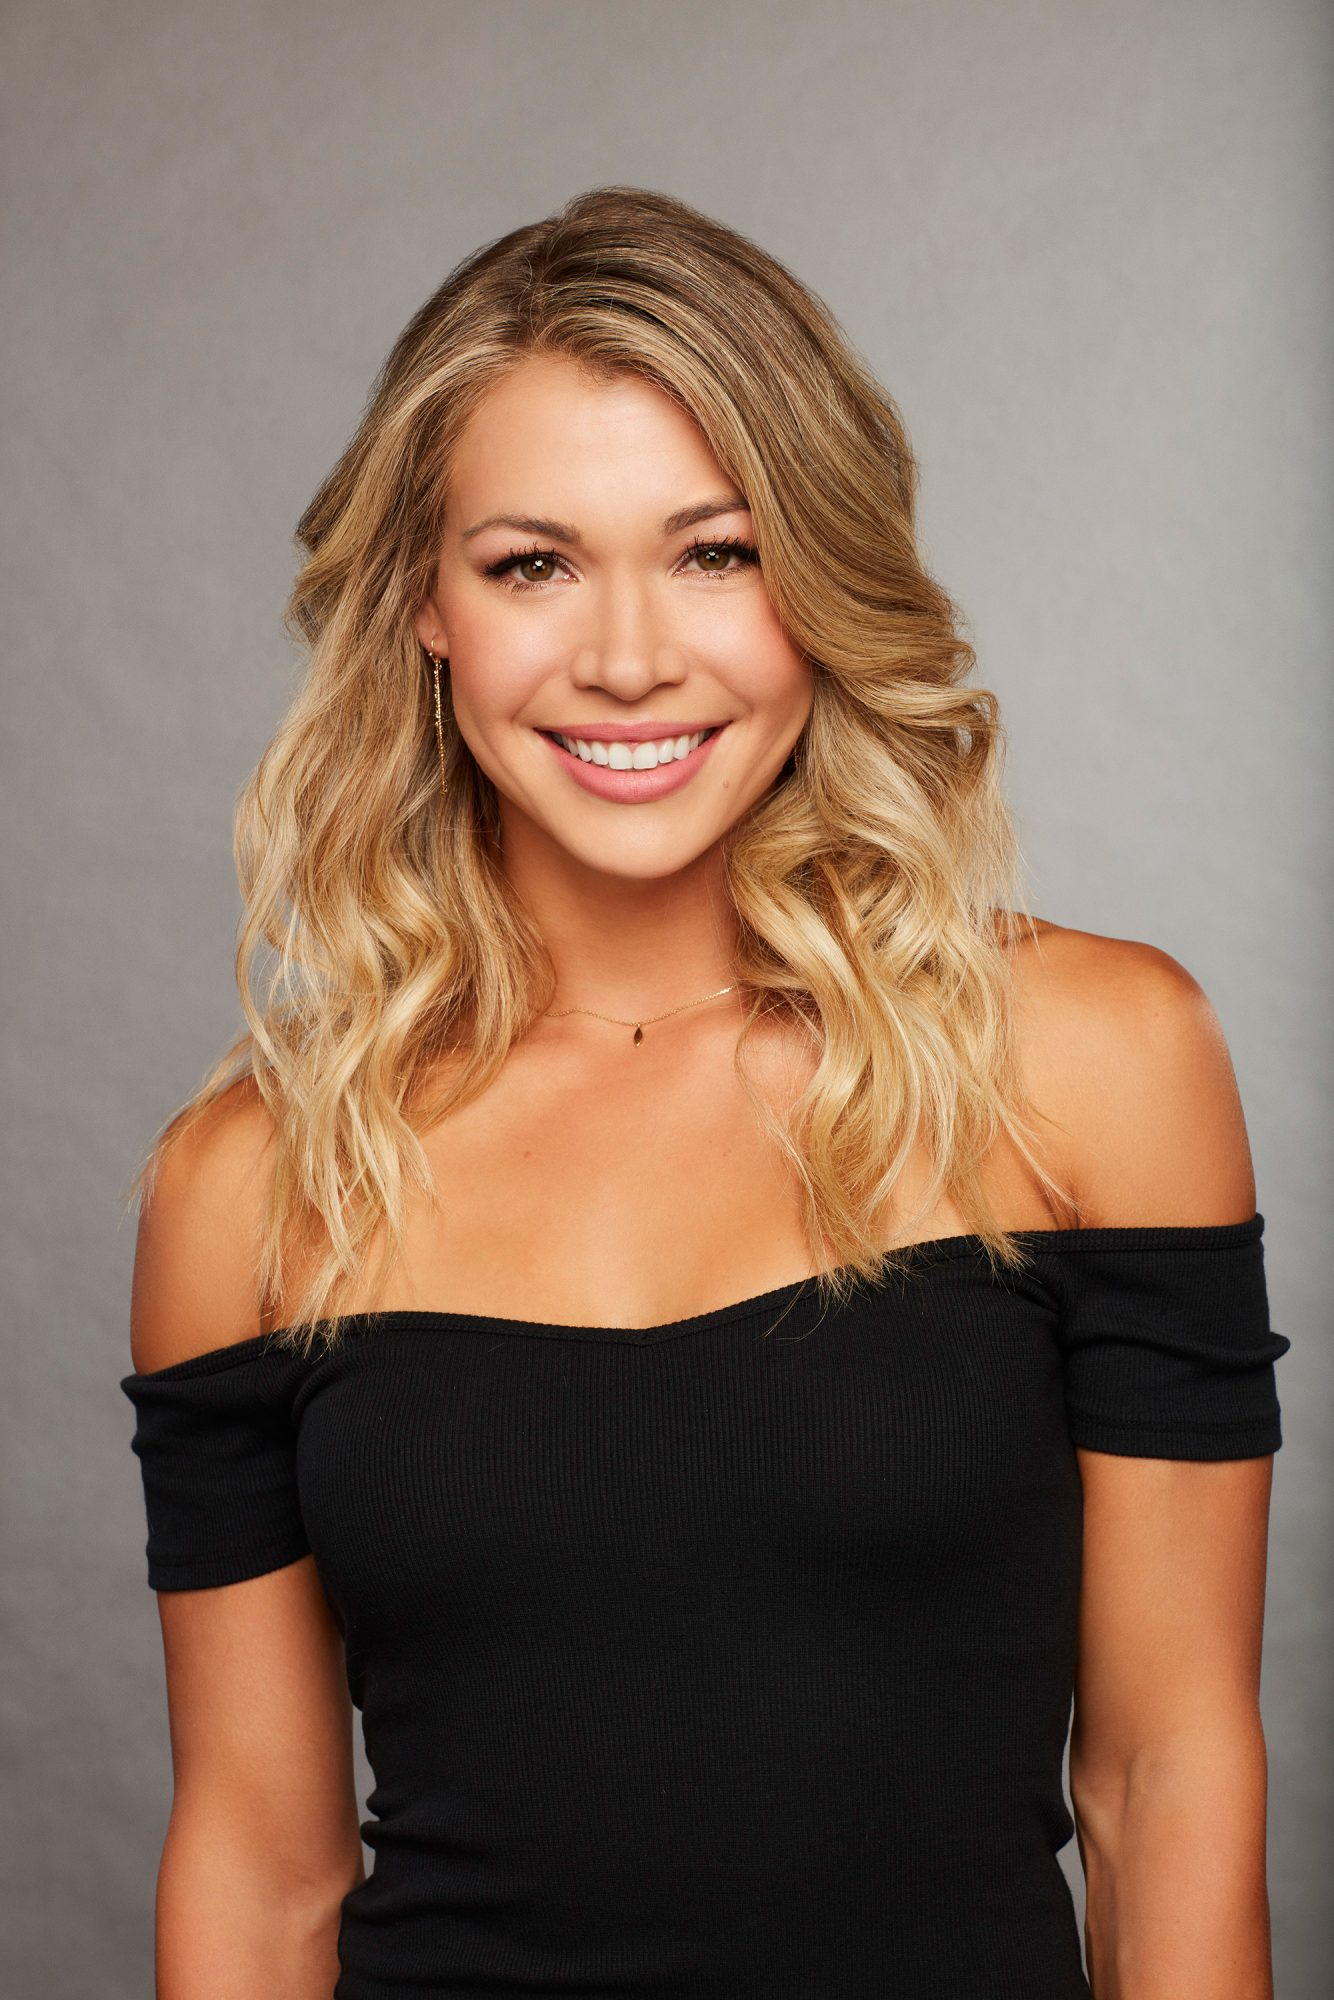 Why You Can't Stand Bachelor Contestant Krystal's Voice, According to Experts